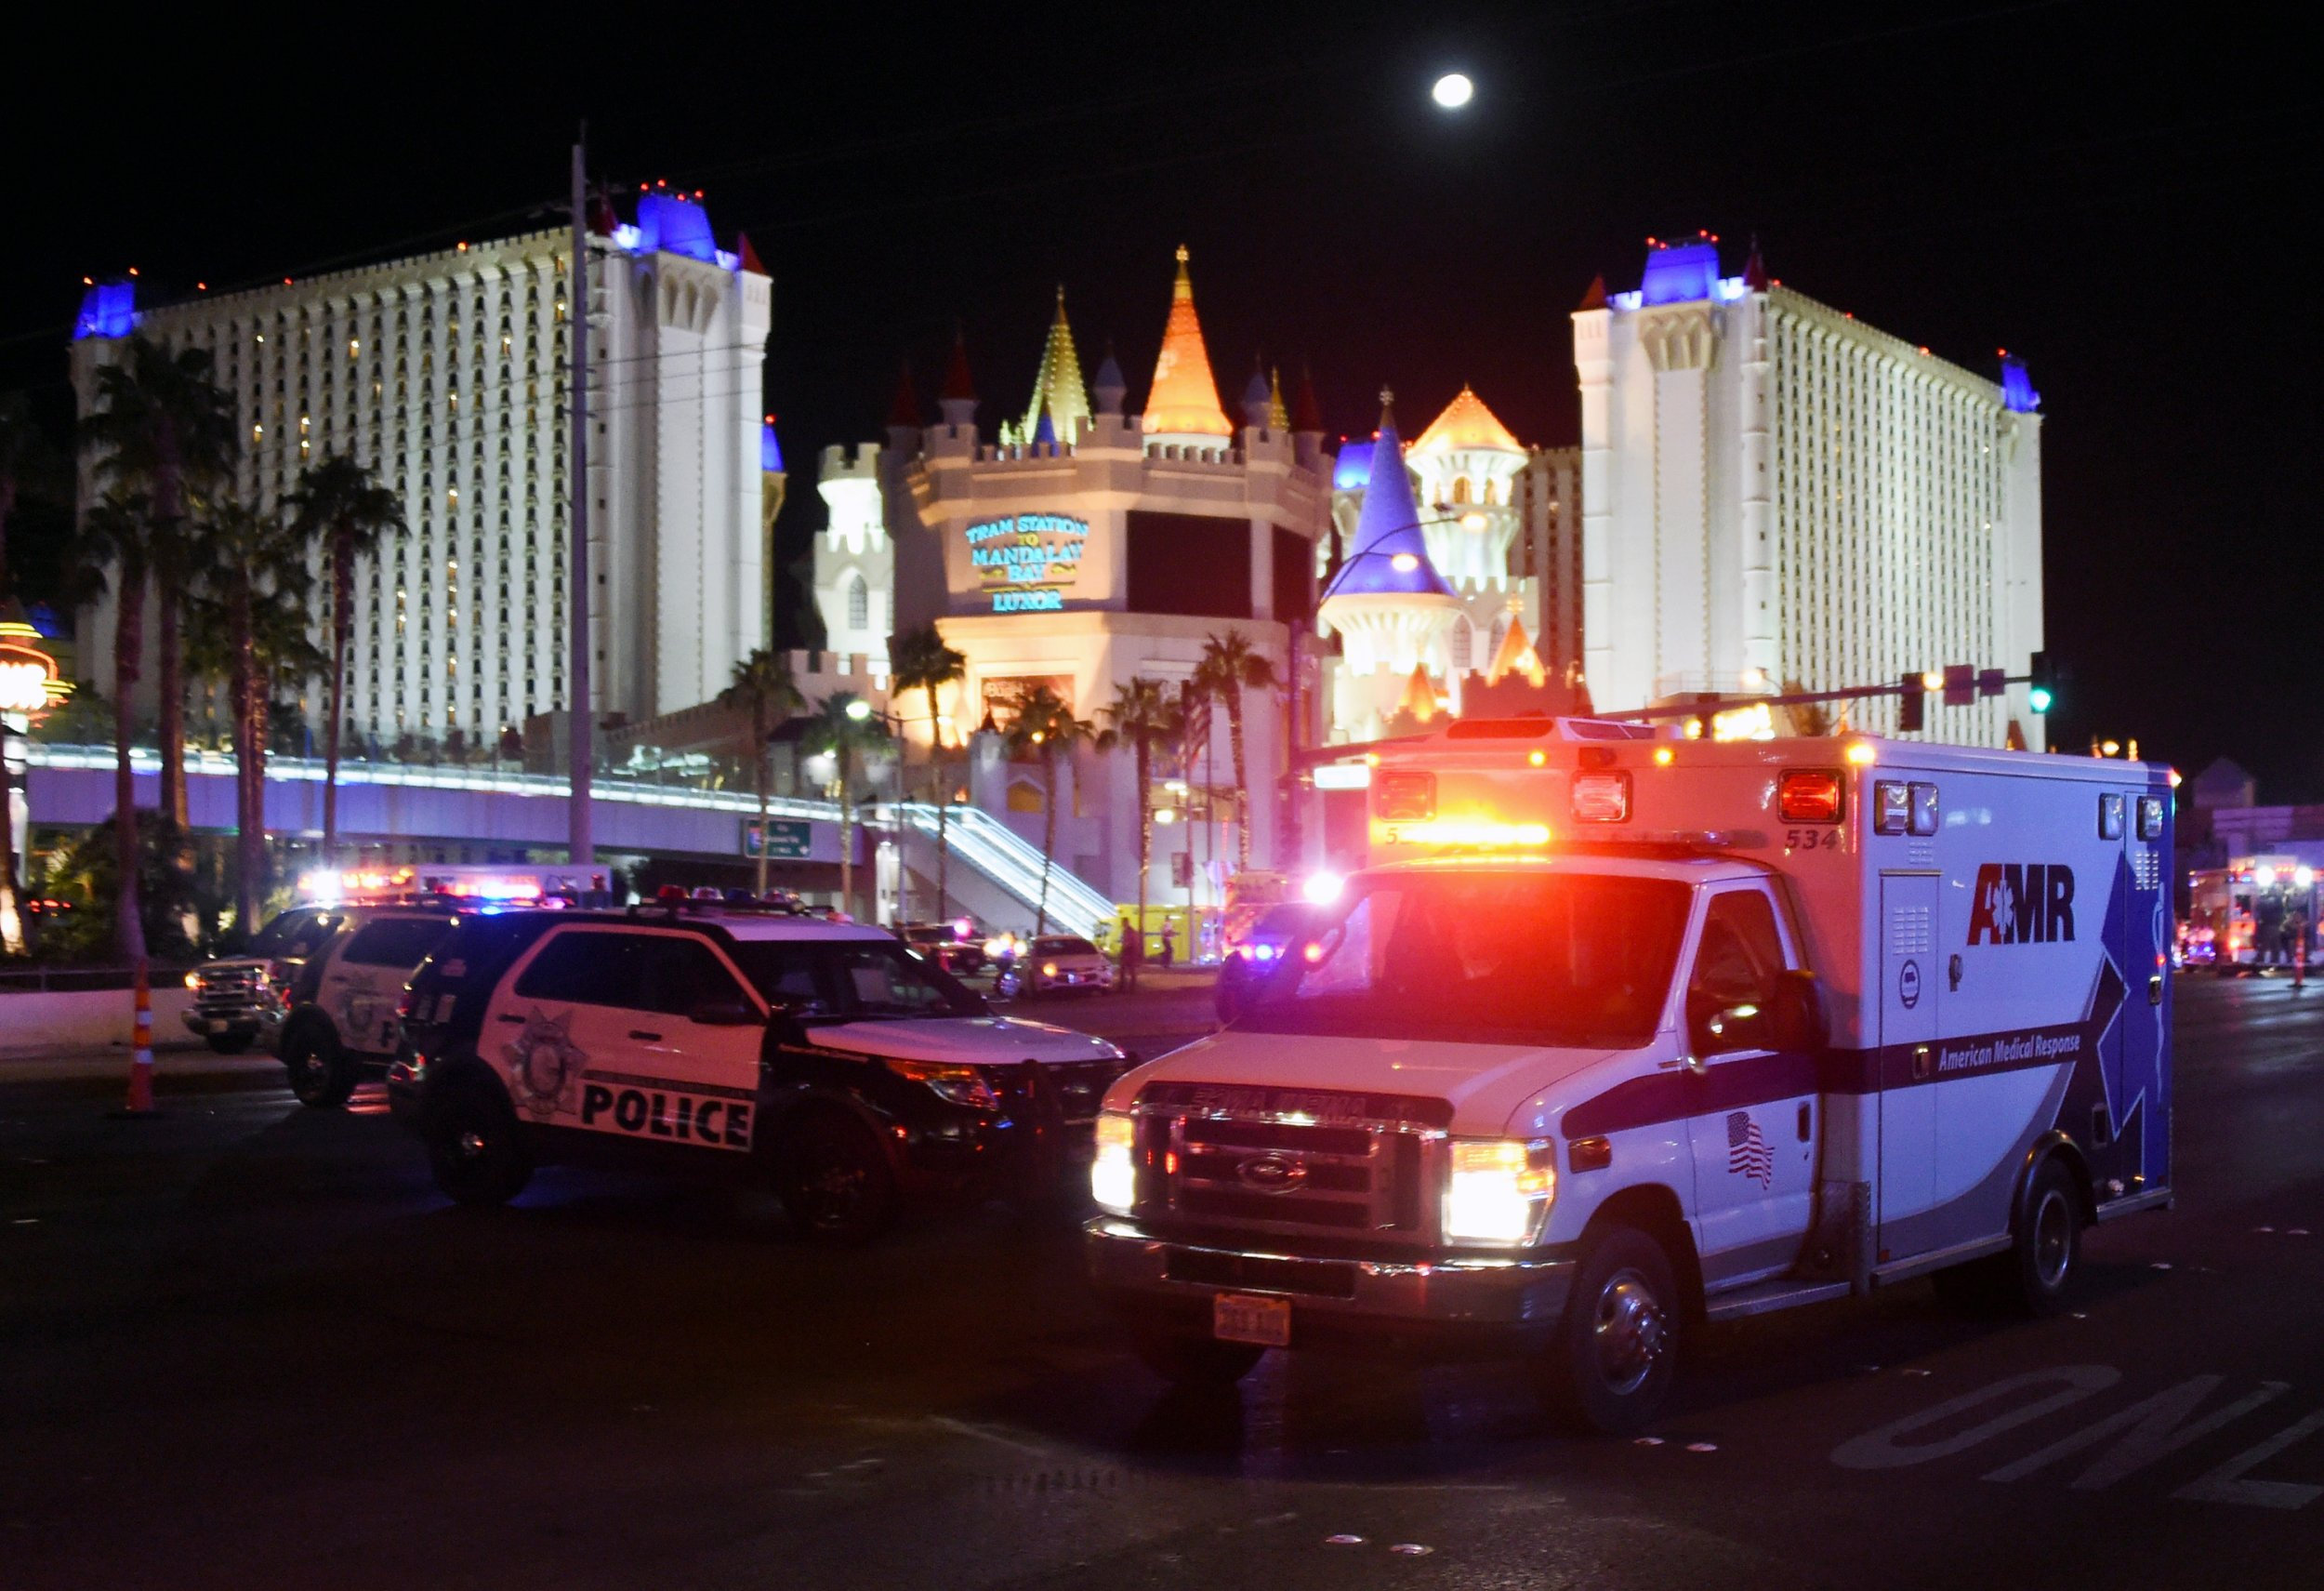 Fake News Stories About the Las Vegas Shooting, Debunked